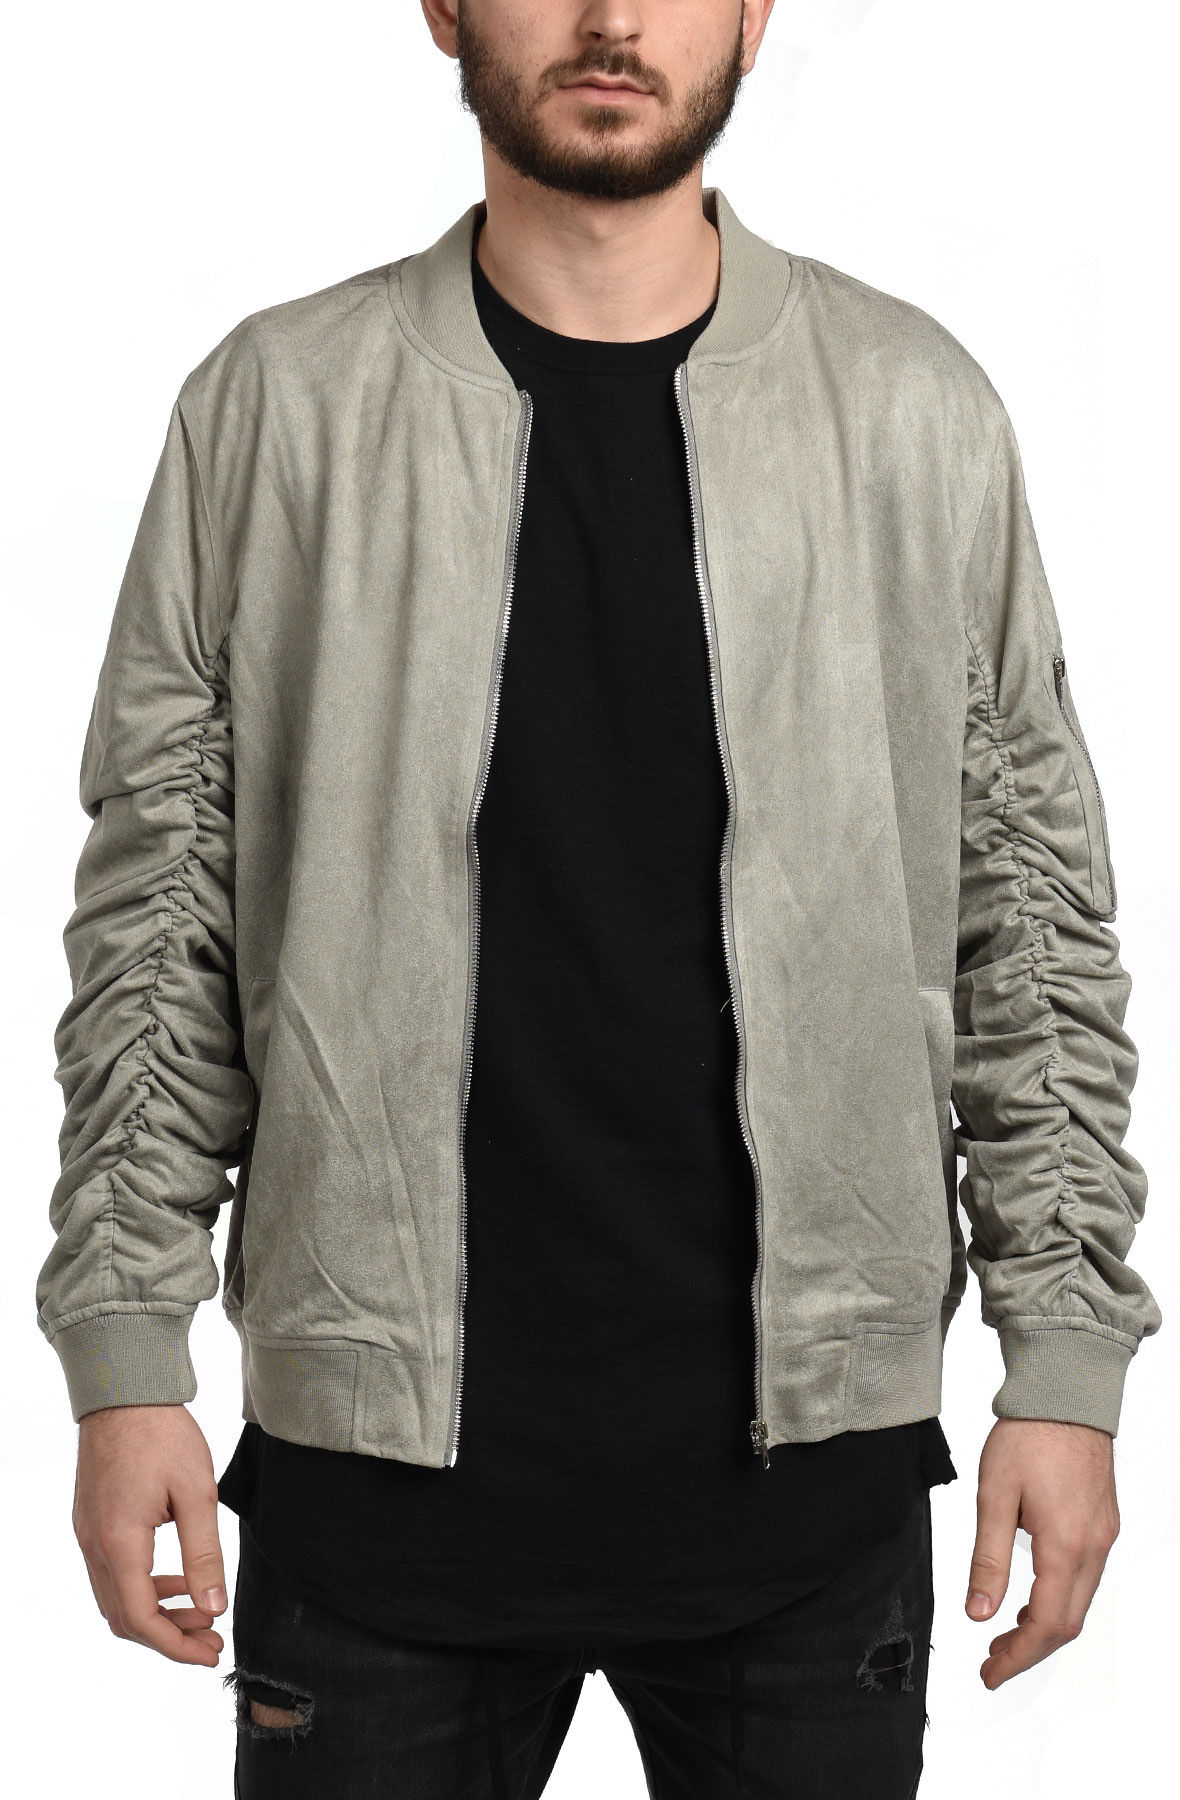 Image of Suede Jacket in Gray